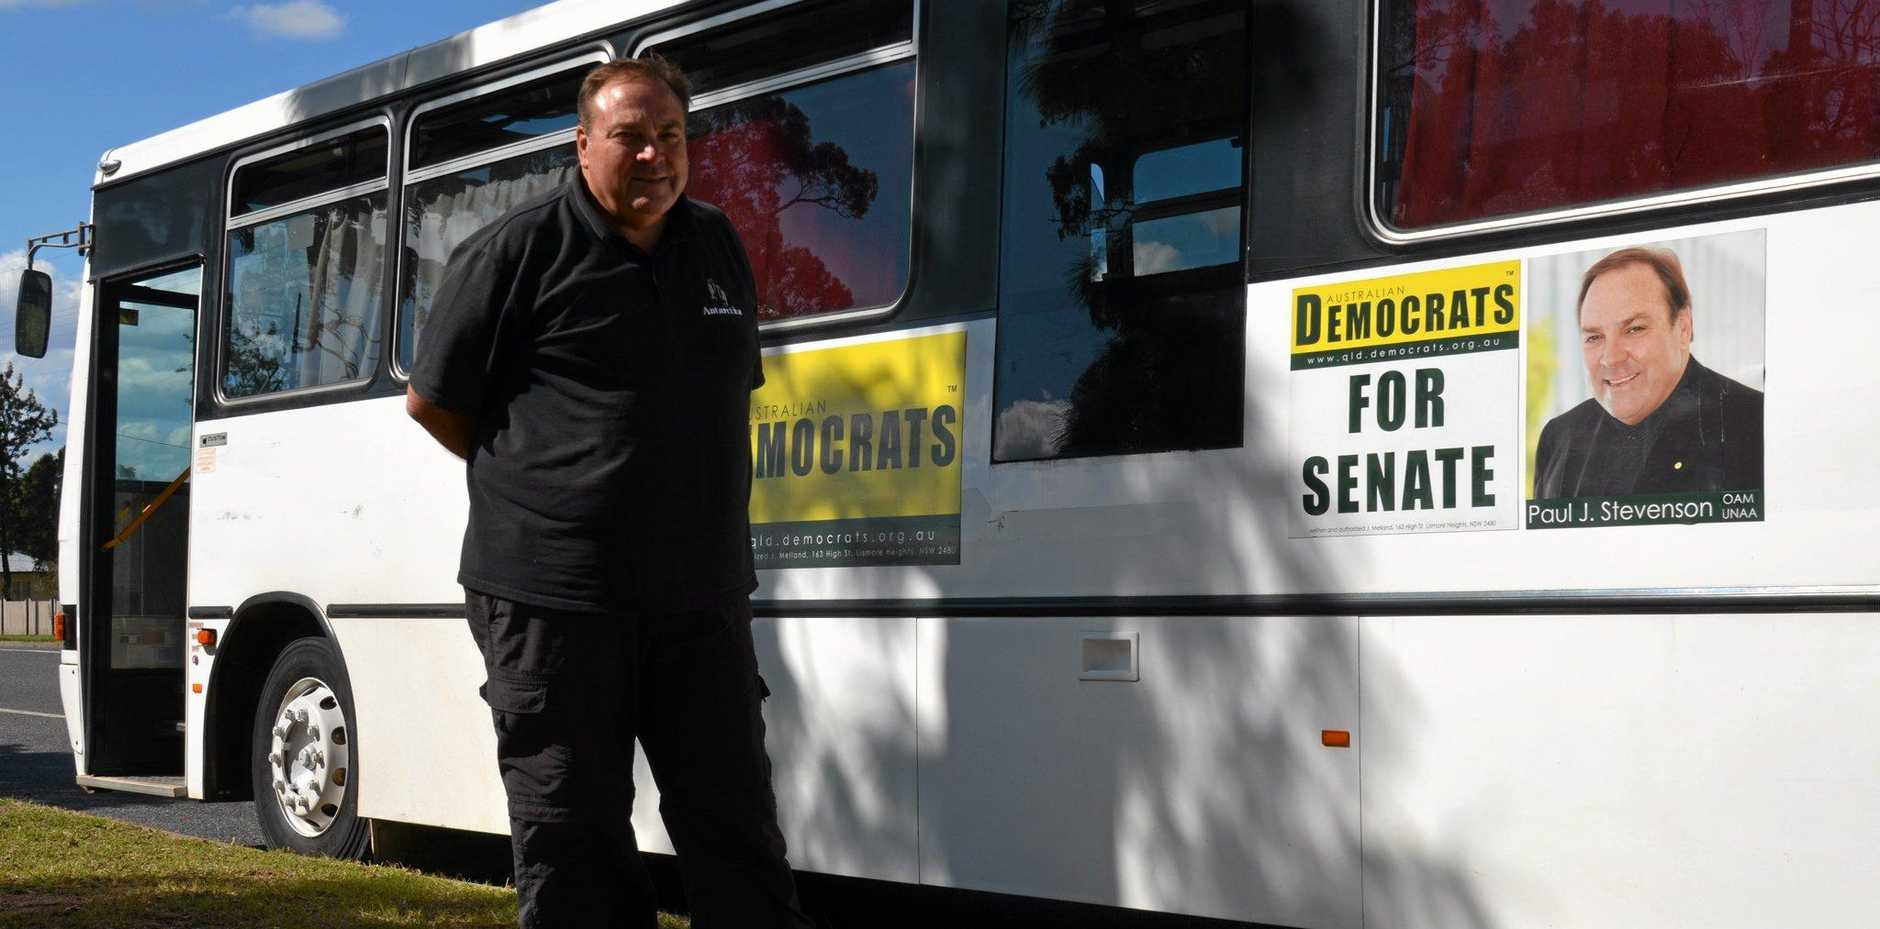 THE THICK OF IT: Senate candidate Paul Stevenson is looking forward to touring for the Australian Democrats.